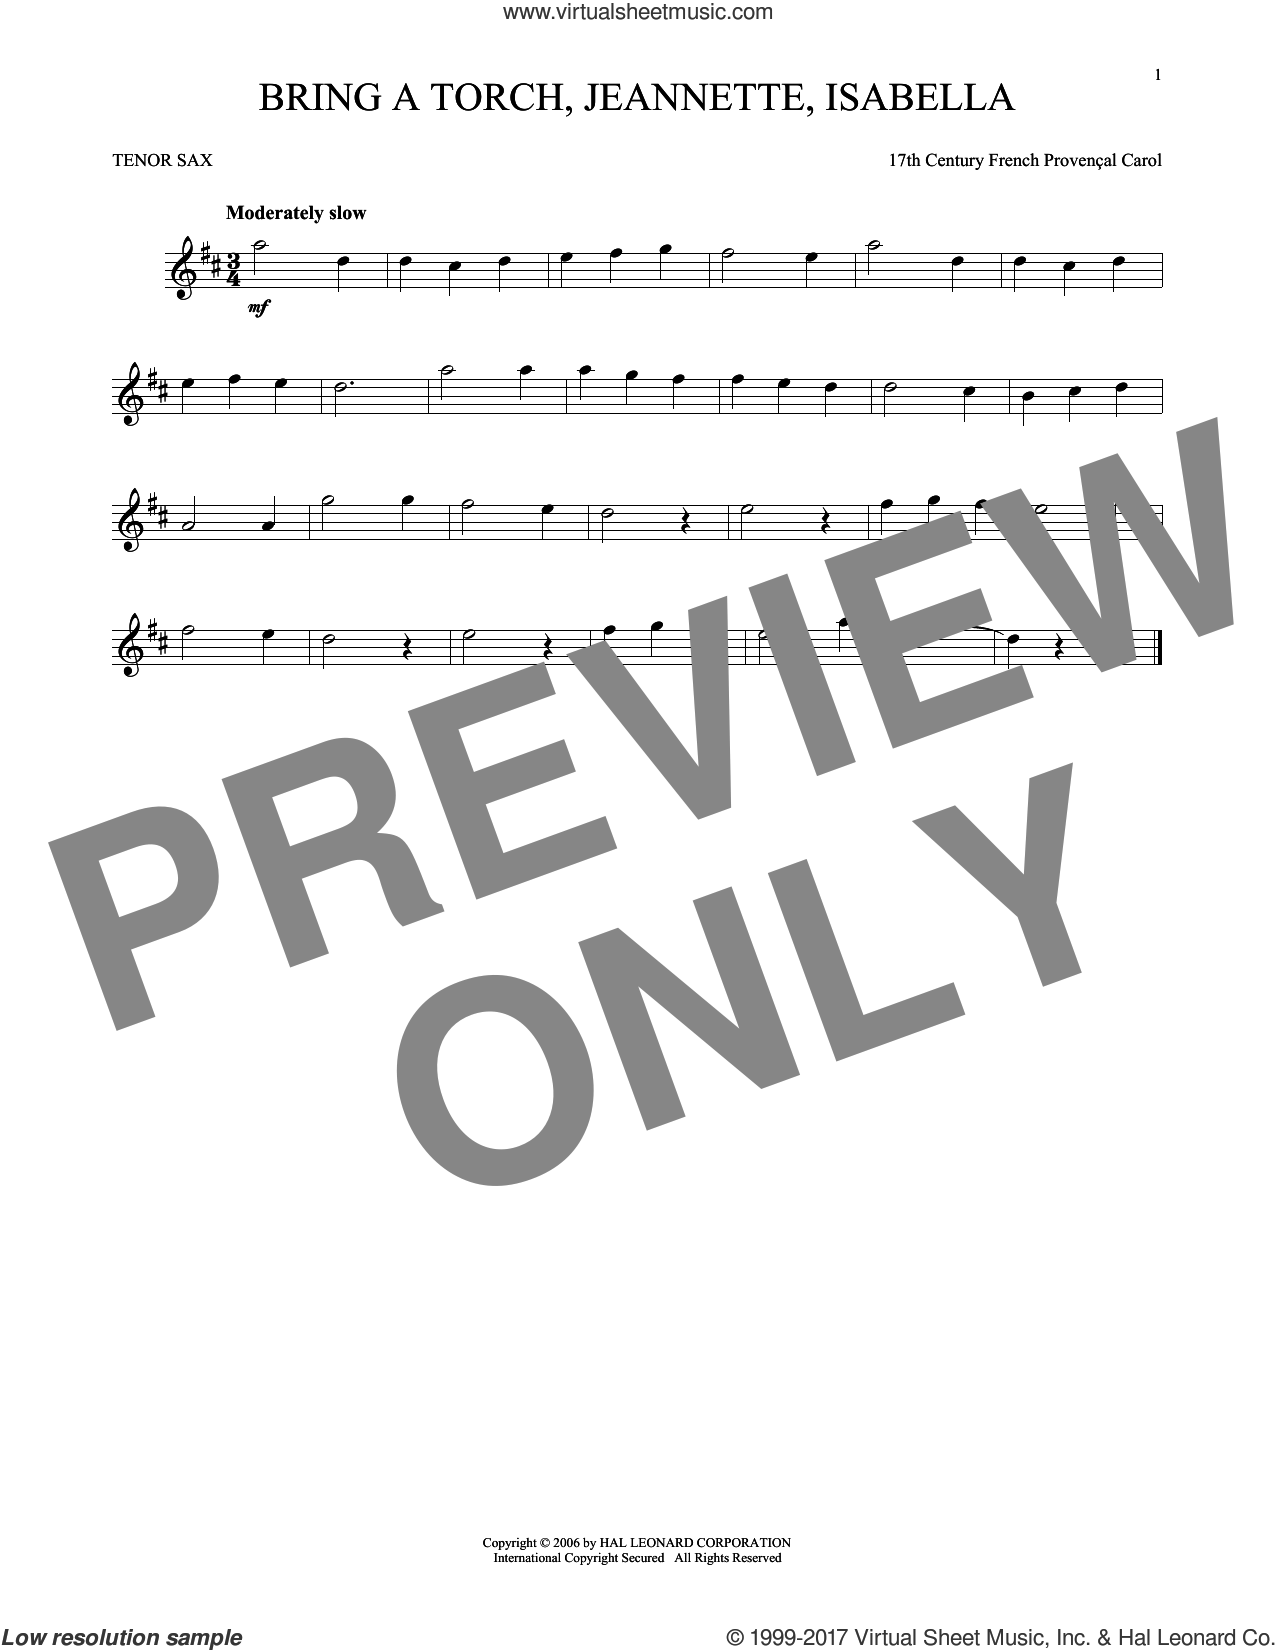 Bring A Torch, Jeannette, Isabella sheet music for tenor saxophone solo by Anonymous and Miscellaneous, intermediate. Score Image Preview.